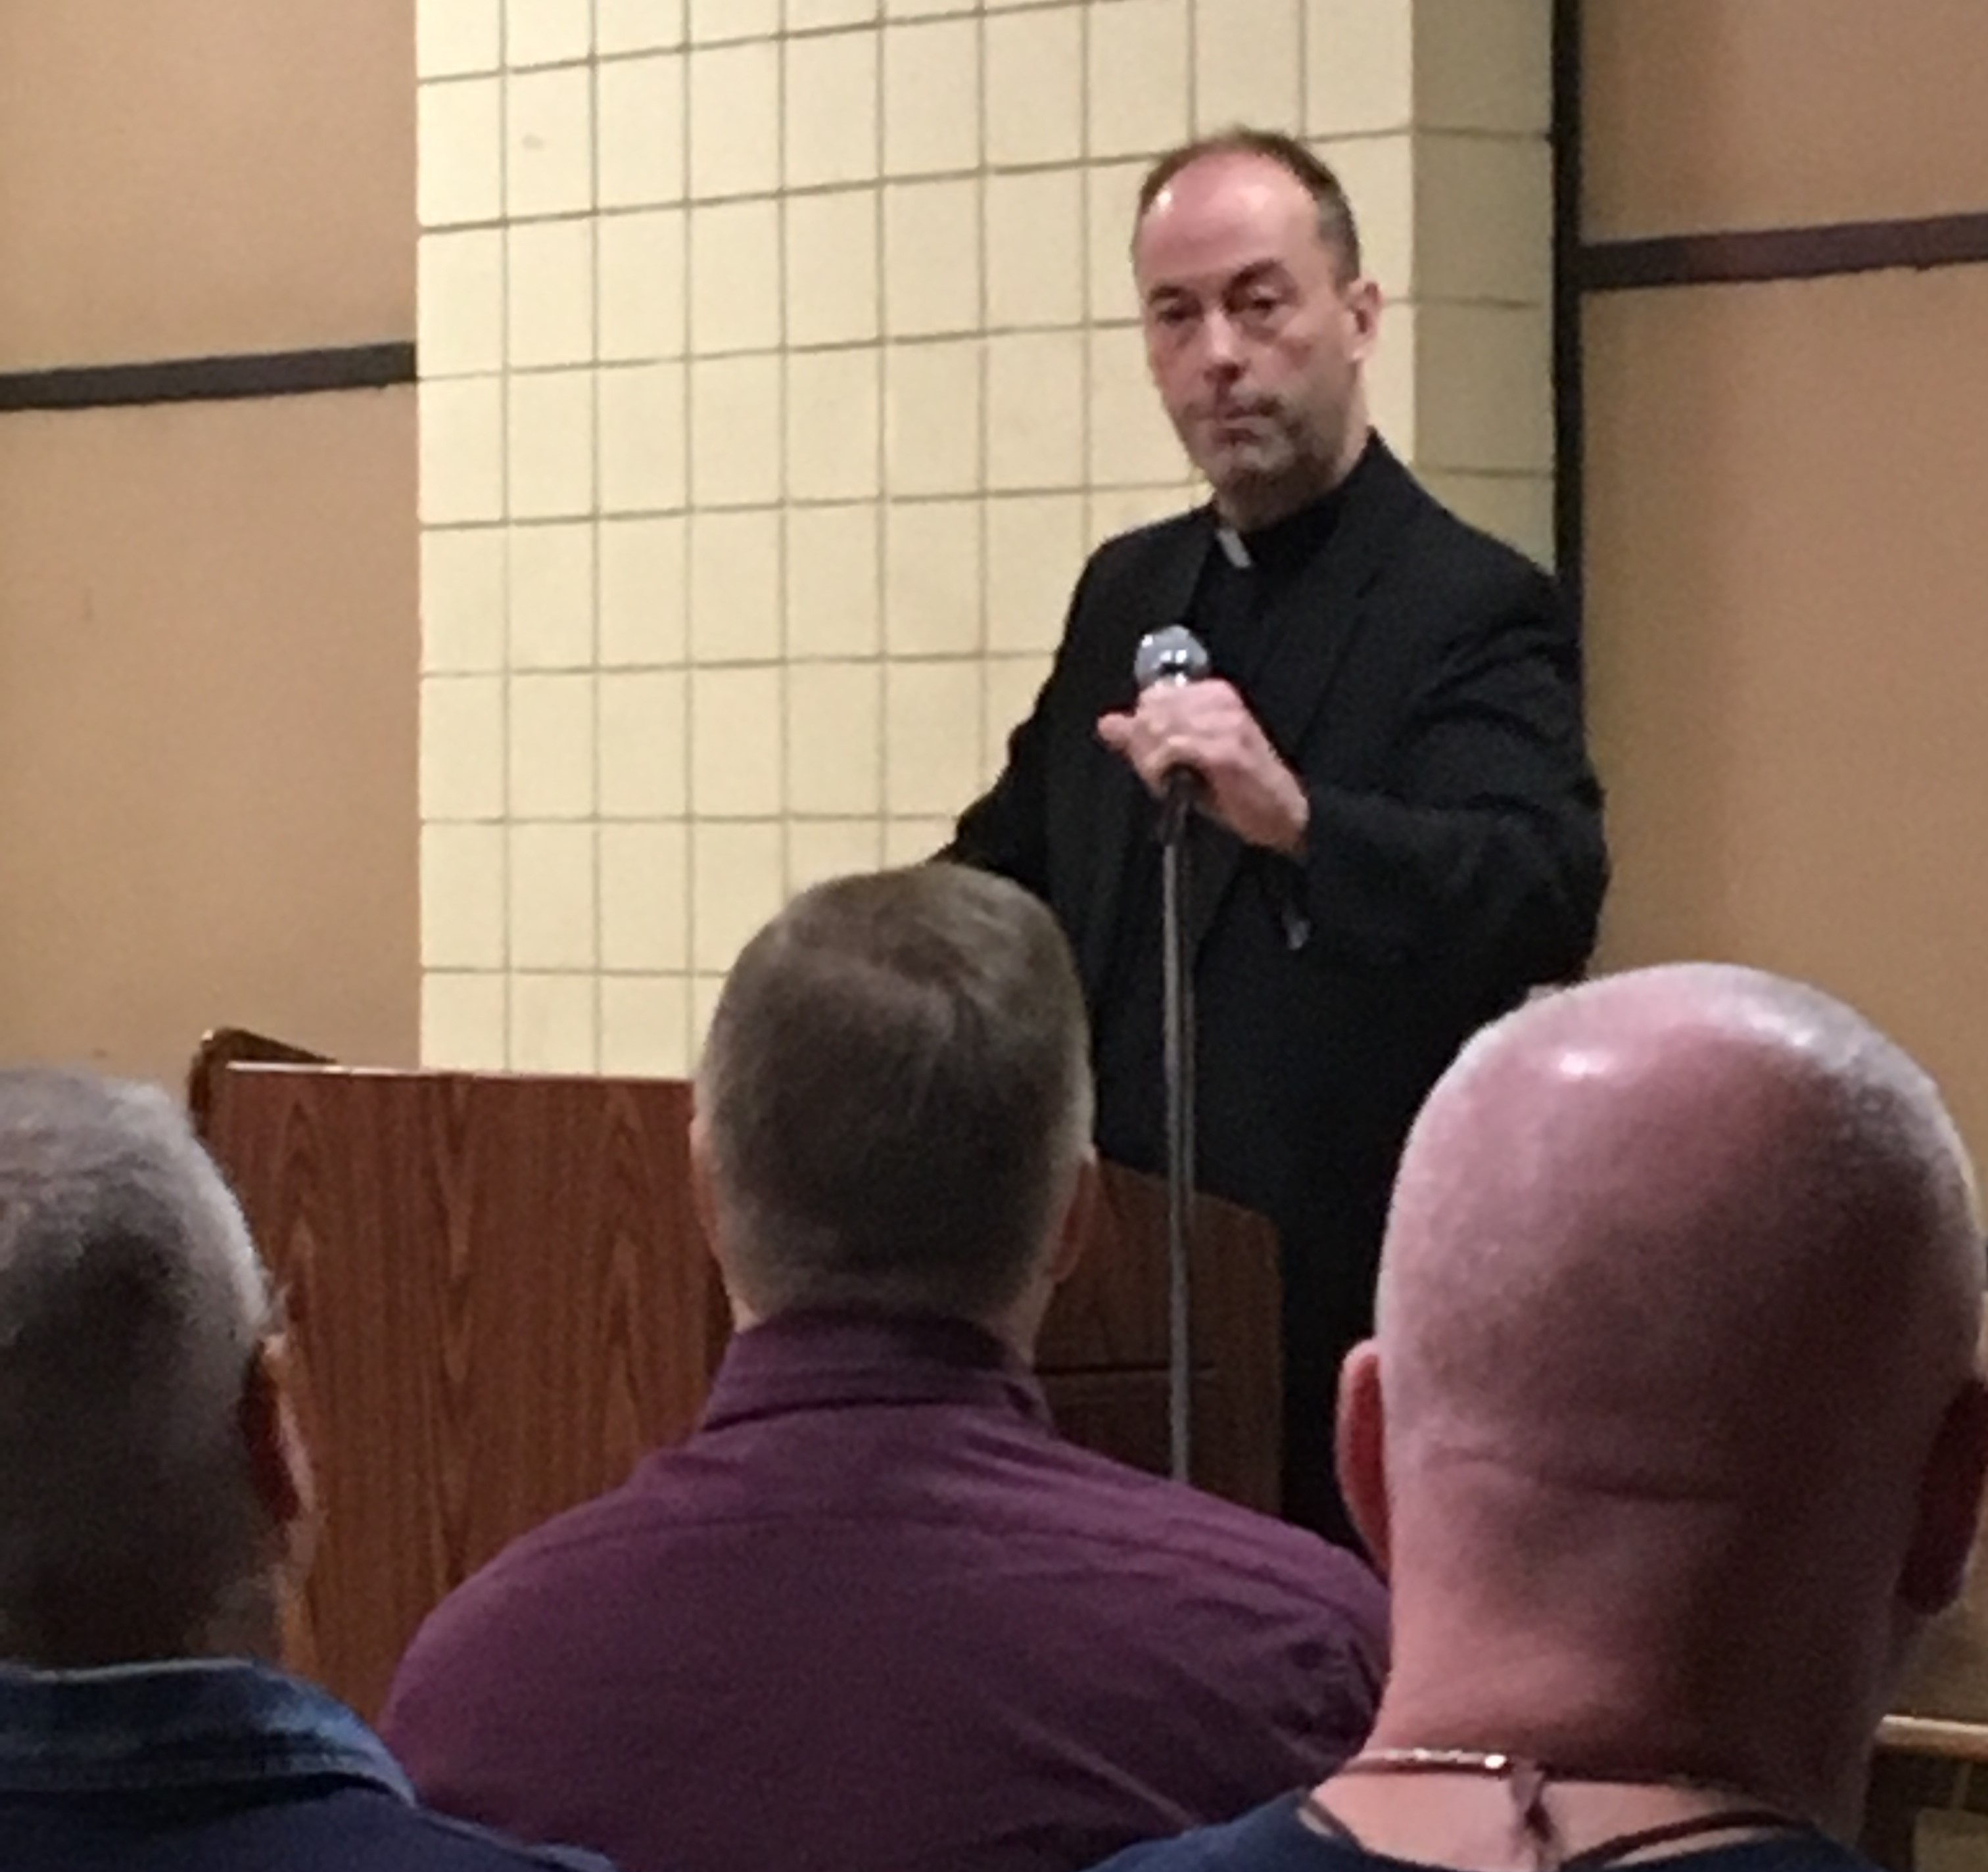 """saint joseph guys """"the men of st joseph is an association of christian men, united under the catholic church, who meet weekly to pray together and encourage each other to be the spiritual leaders of their families."""